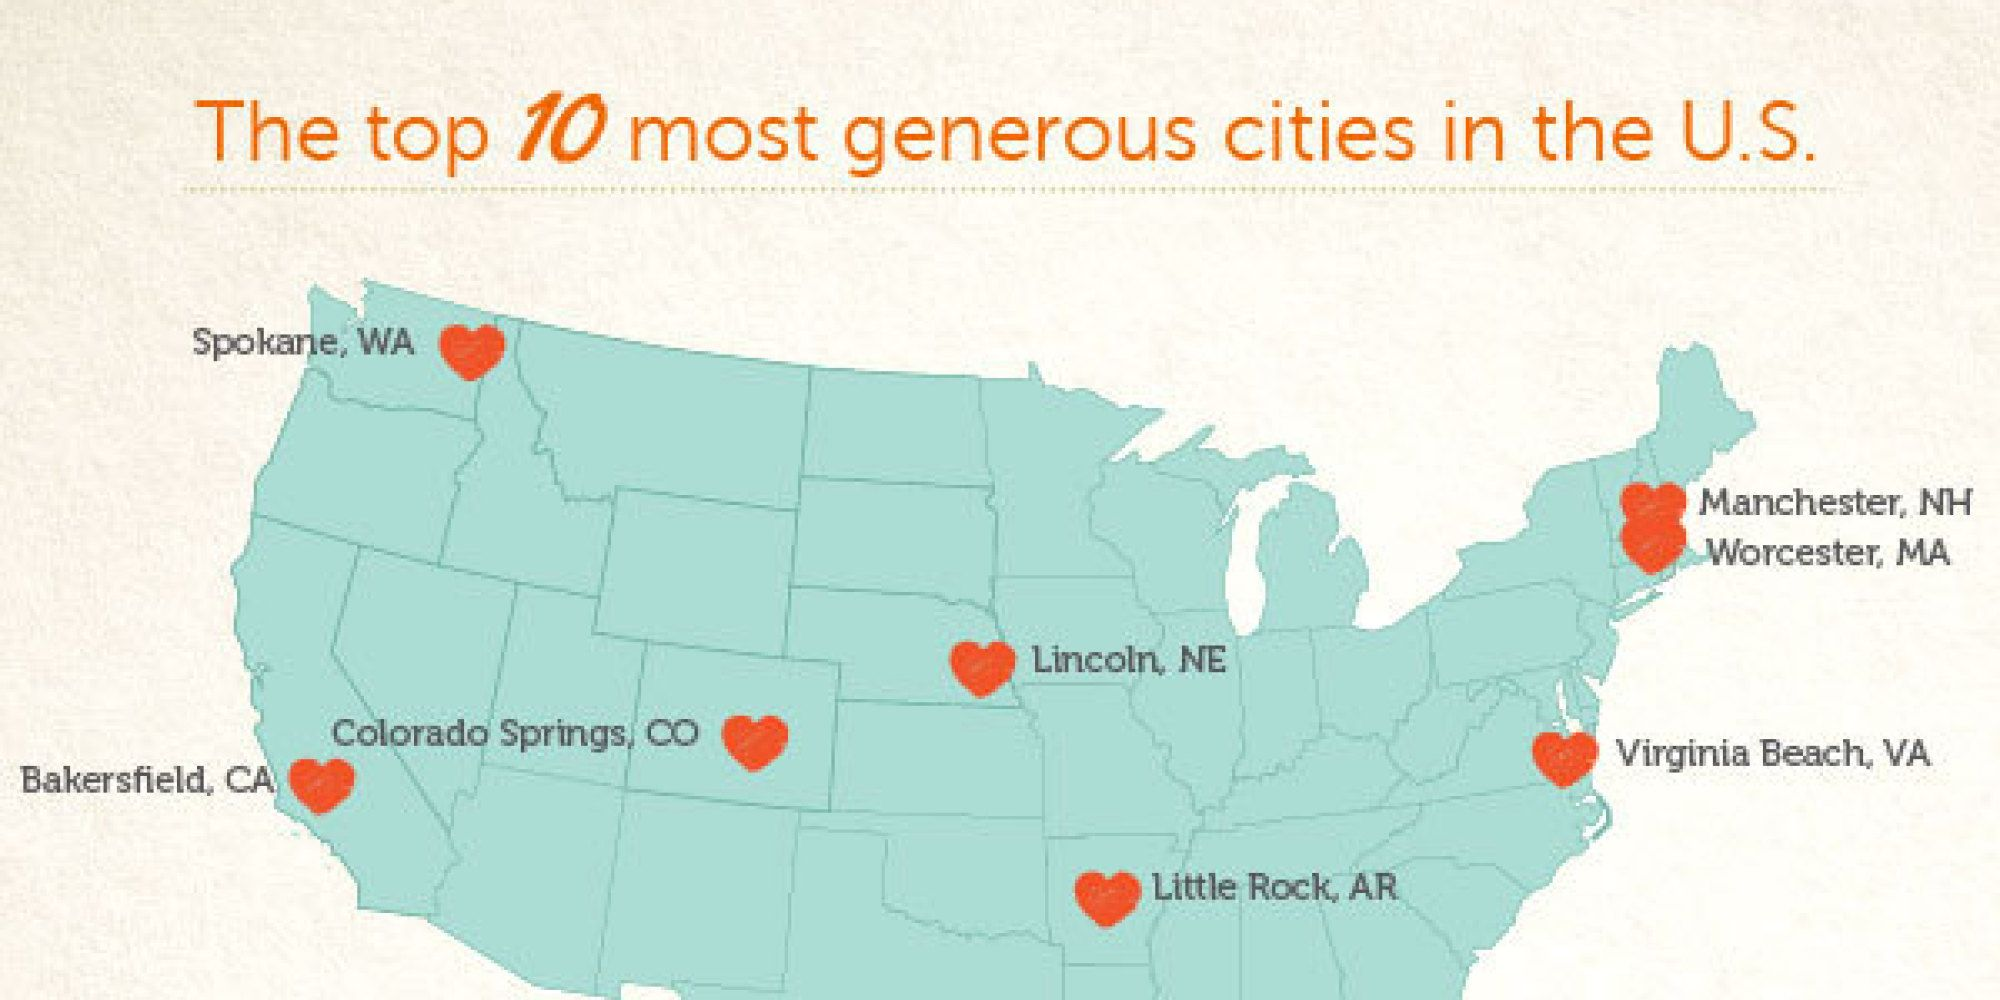 """There are many ways to define generosity, but according to the DIY mavens at Craftsy, there's one true indicator of a person's propensity to give -- their craftiness, of course. In a survey of some 10,000 """"makers"""" in over 700 cities across the country, Craftsy tracked the frequency of and likelihood of gift giving (especially handmade ones), landing on Manchest..."""